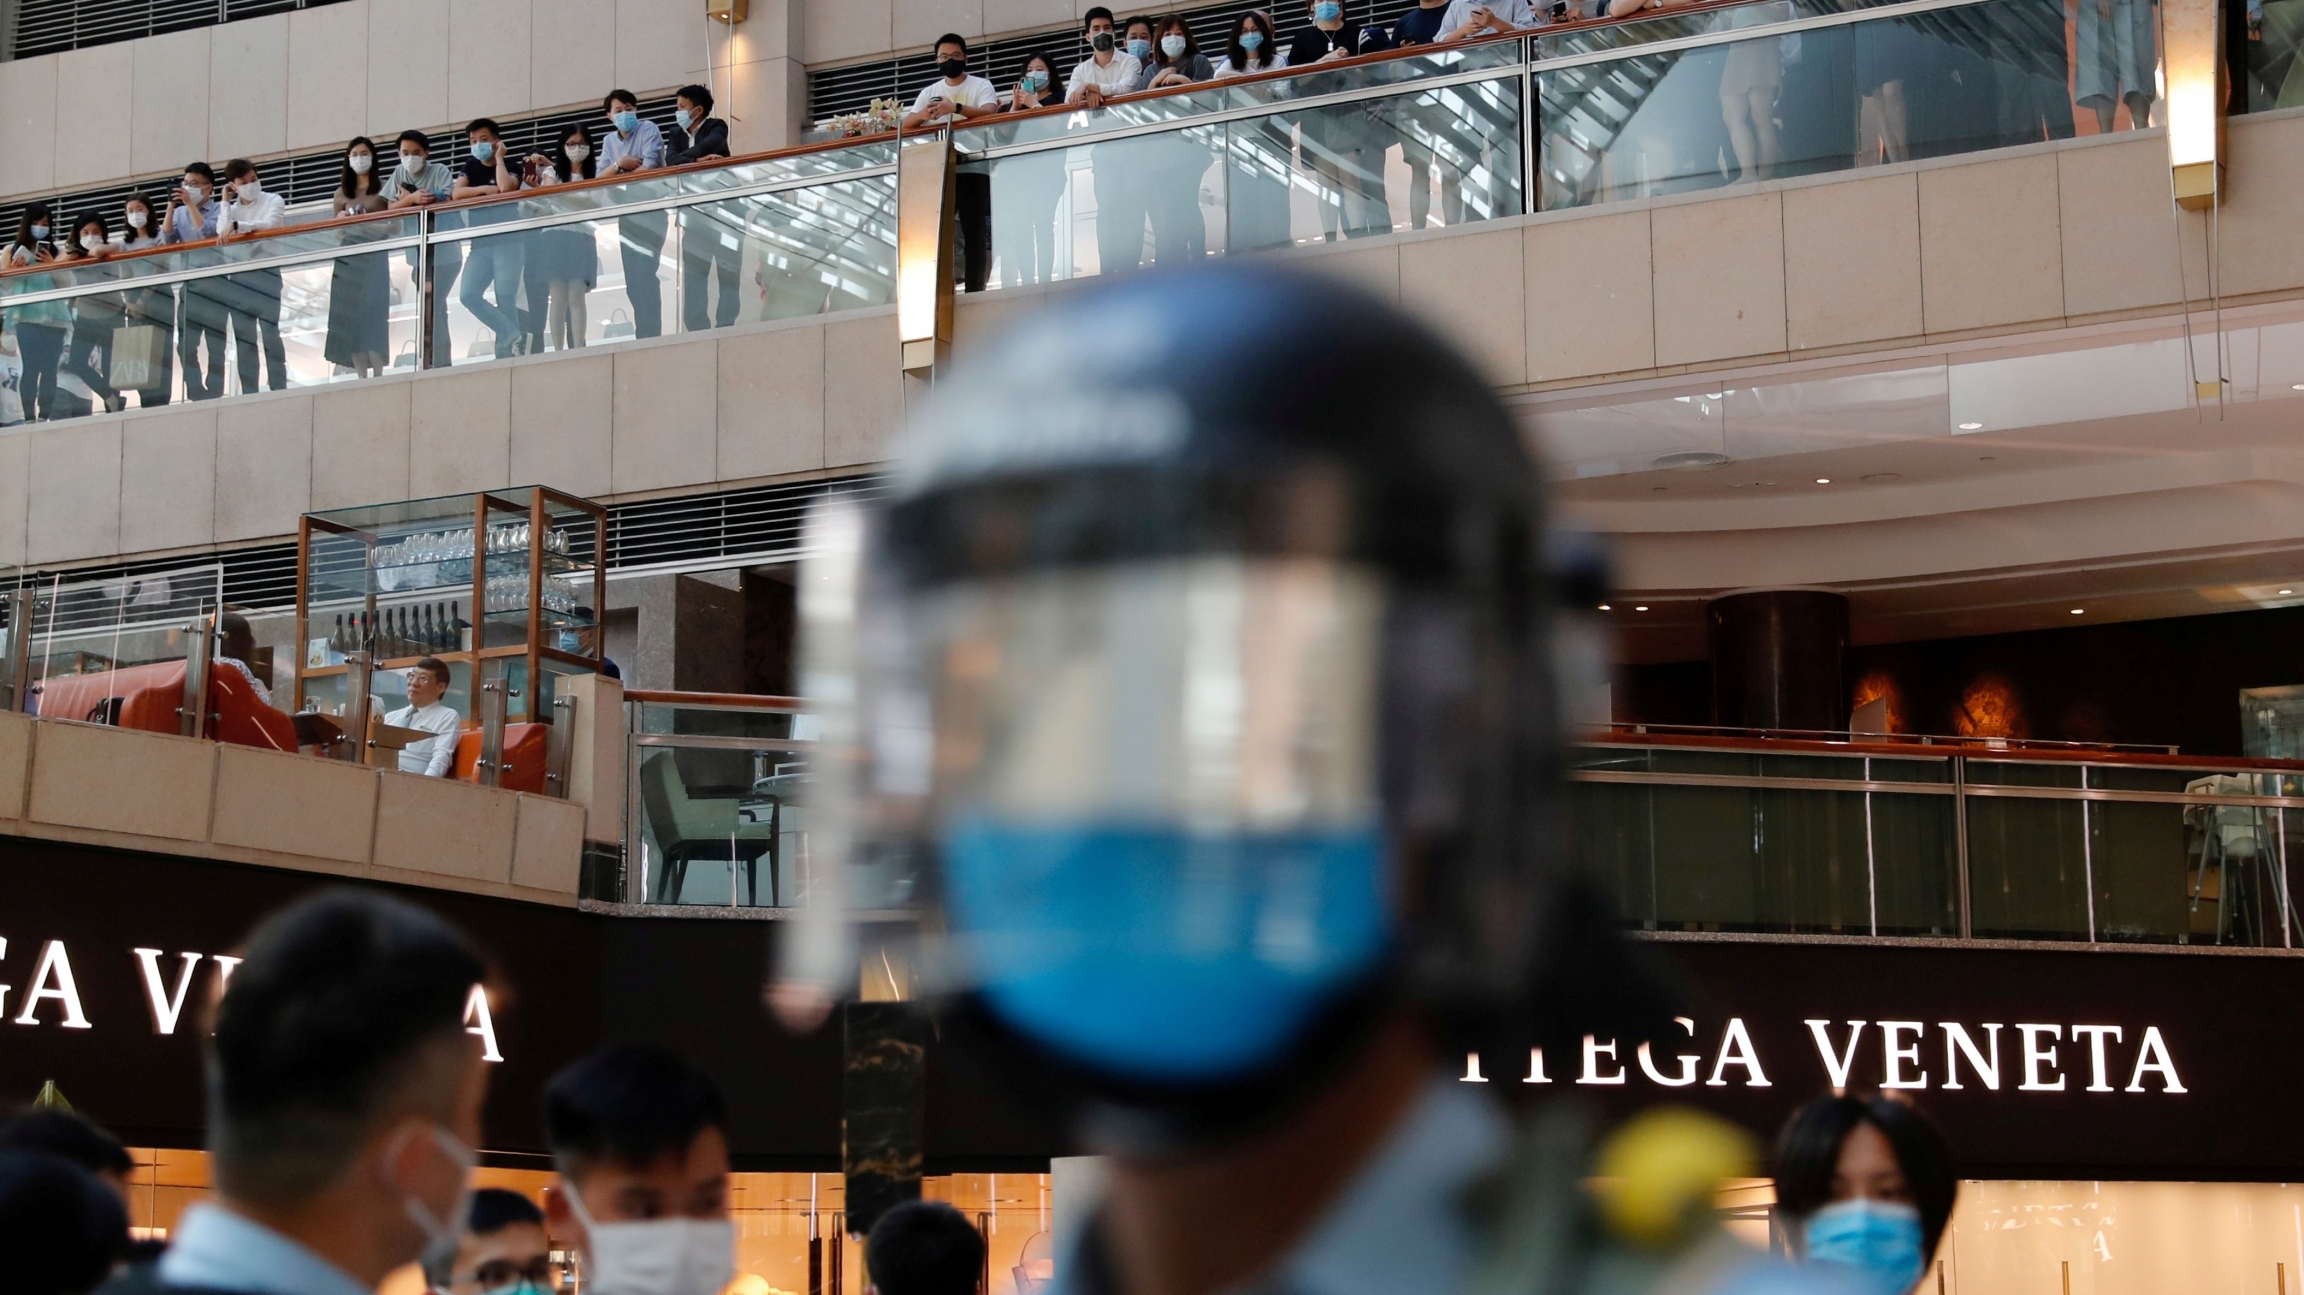 Riot police patrol at a shopping mall during a protest after China's parliament passes a national security law for Hong Kong, in Hong Kong, June 30, 2020.